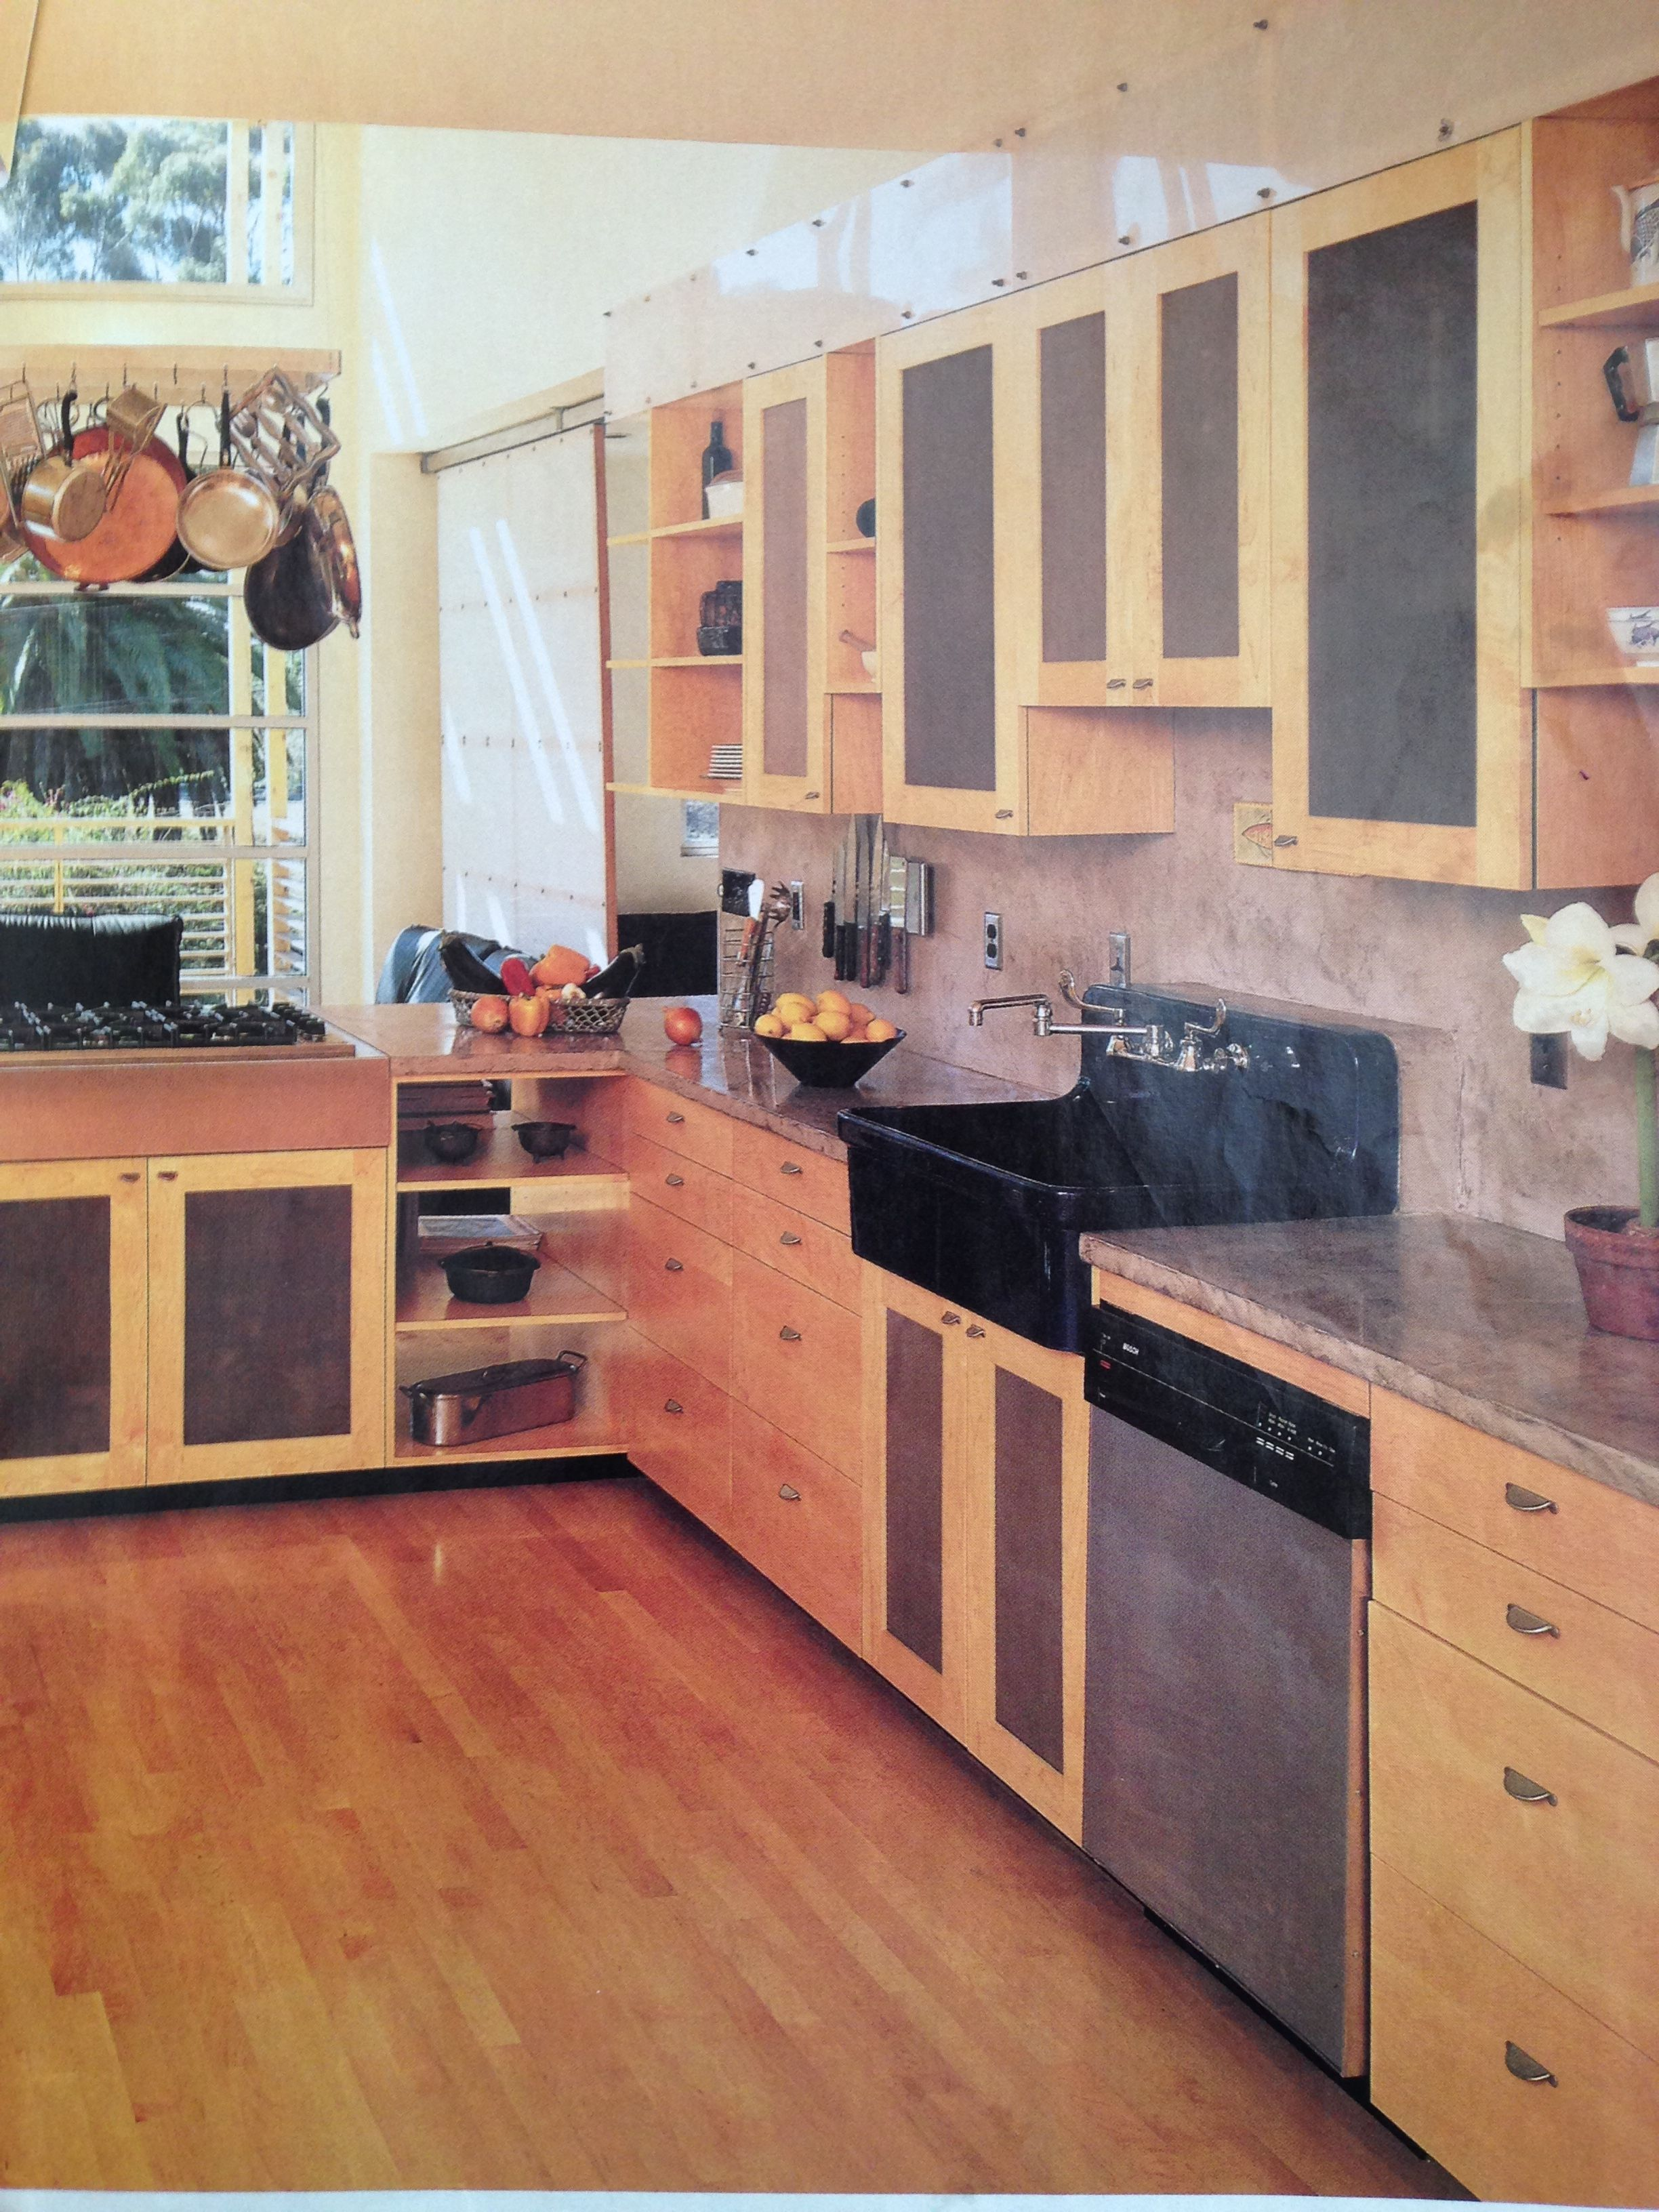 A Decade Old Clipping I Guess We Liked Color Insert Cabinet Doors Back Then Too The See Through Base Counter Shelving Is Kind O Yard Design Front Yard Design